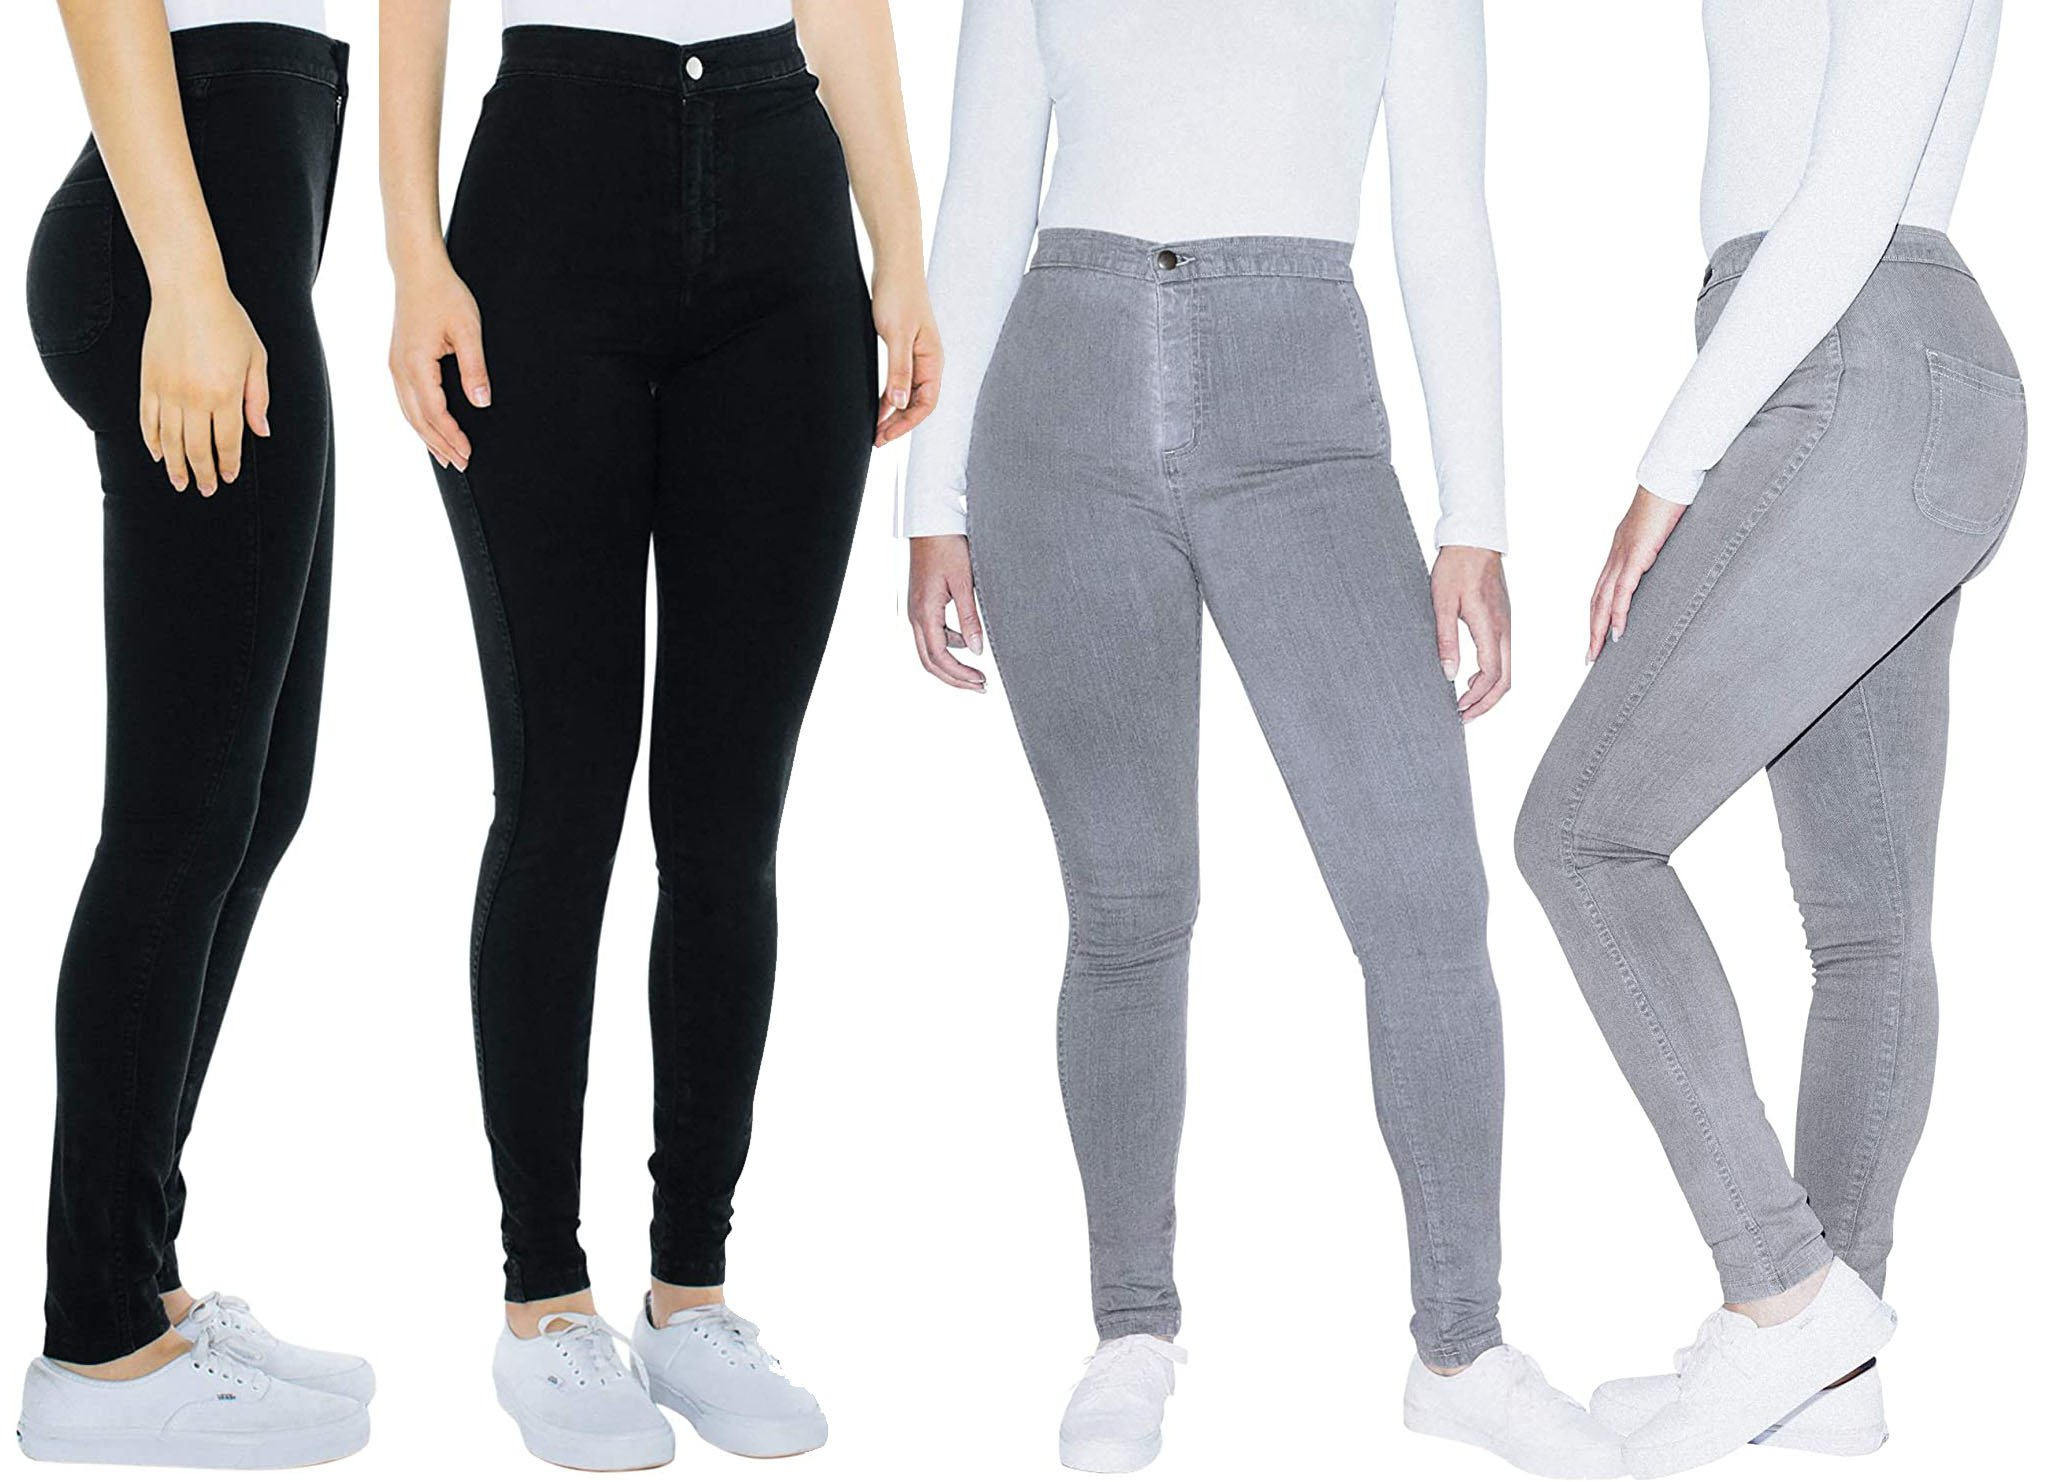 The Easy Jean is a super skinny yet stretchy, lightweight, and soft jean